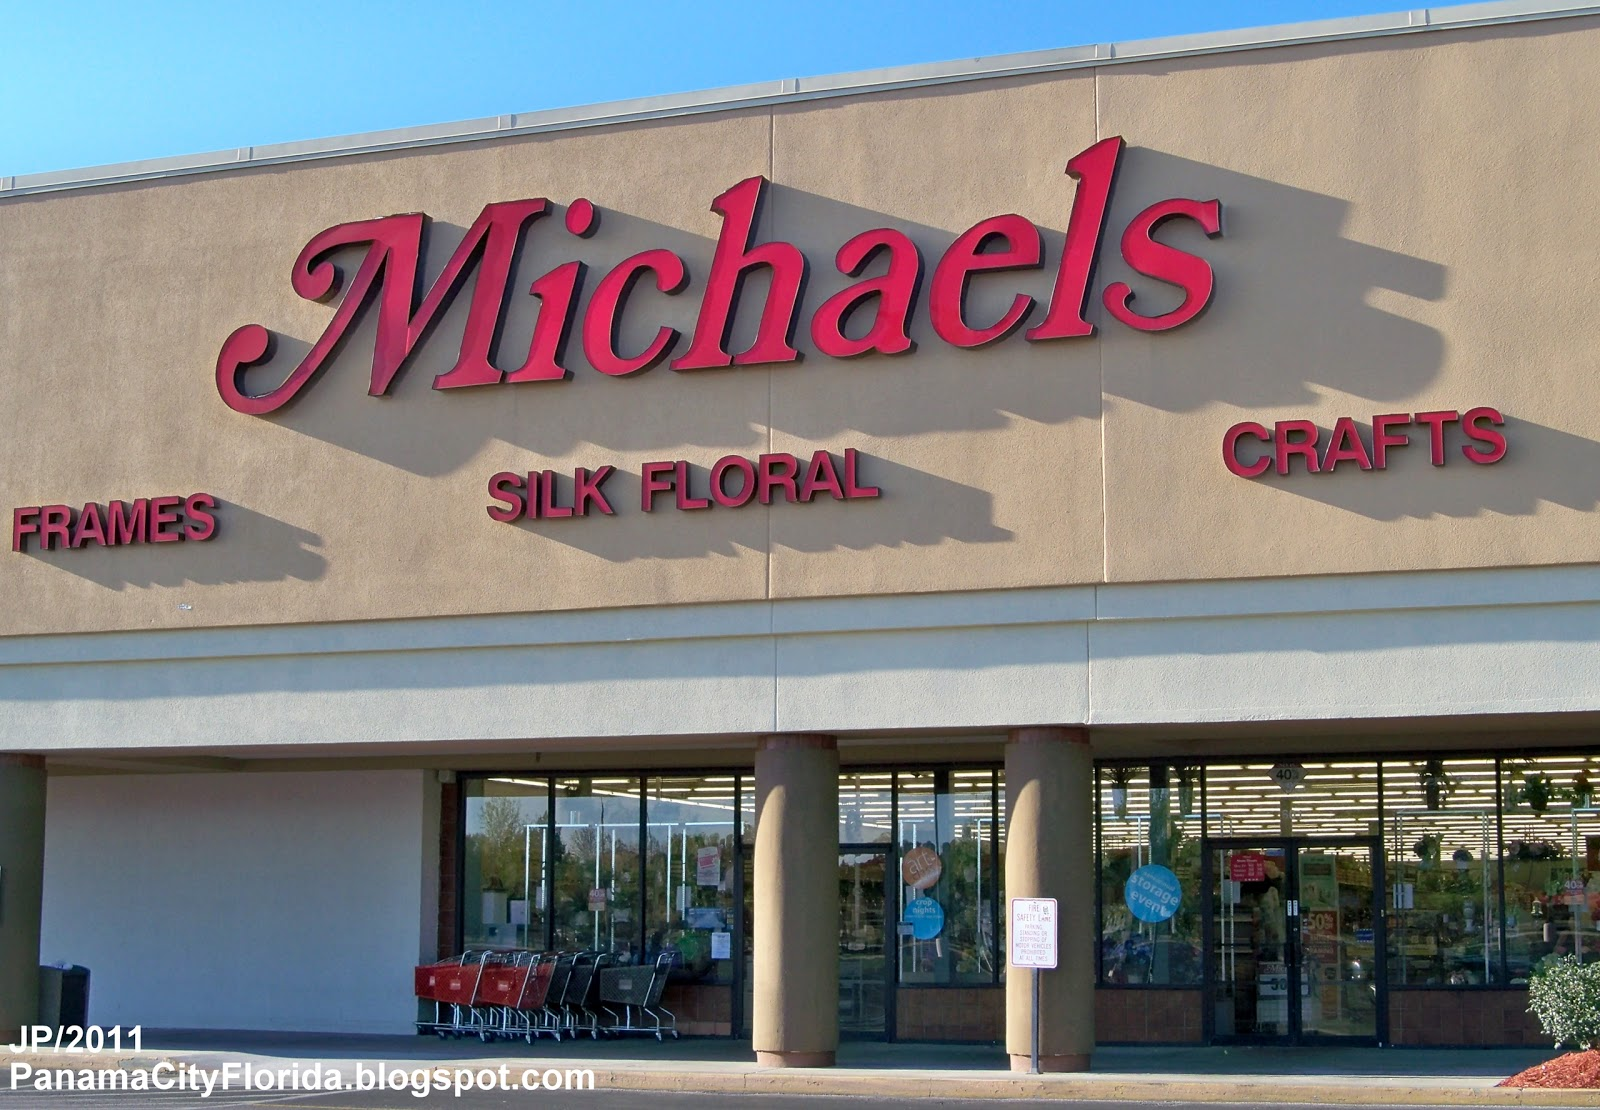 Michaels offers a large selection of arts and crafts including custom framing, sewing, floral, wall decor, and holiday/seasonal products. You can even take a class, find DIY project ideas, or find inspirational works of art, wedding ideas and more for free!